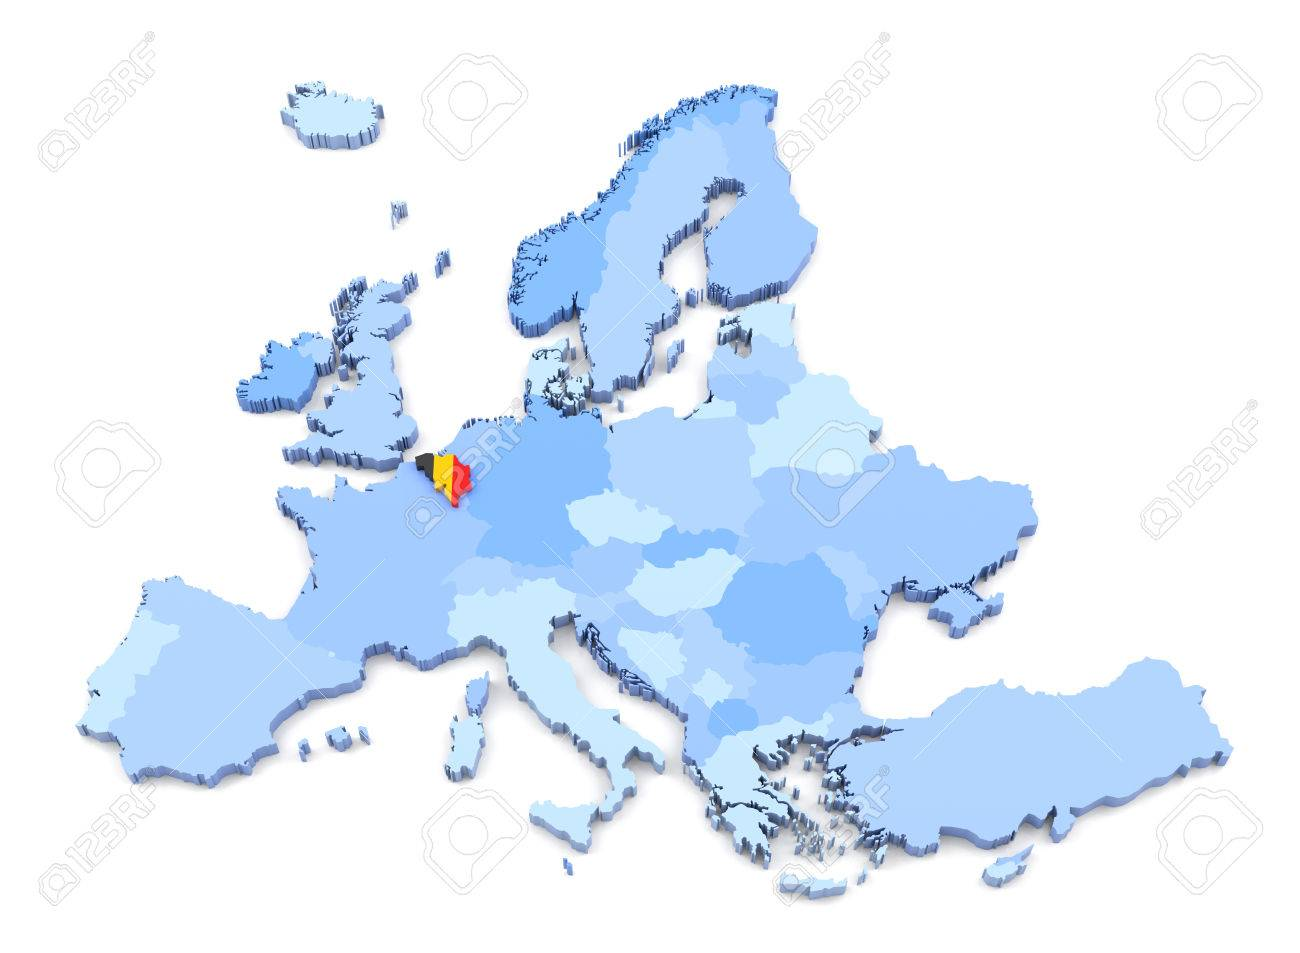 Europe Map Belgium.3d Rendering Of Europe Map Belgium With Flag Stock Photo Picture